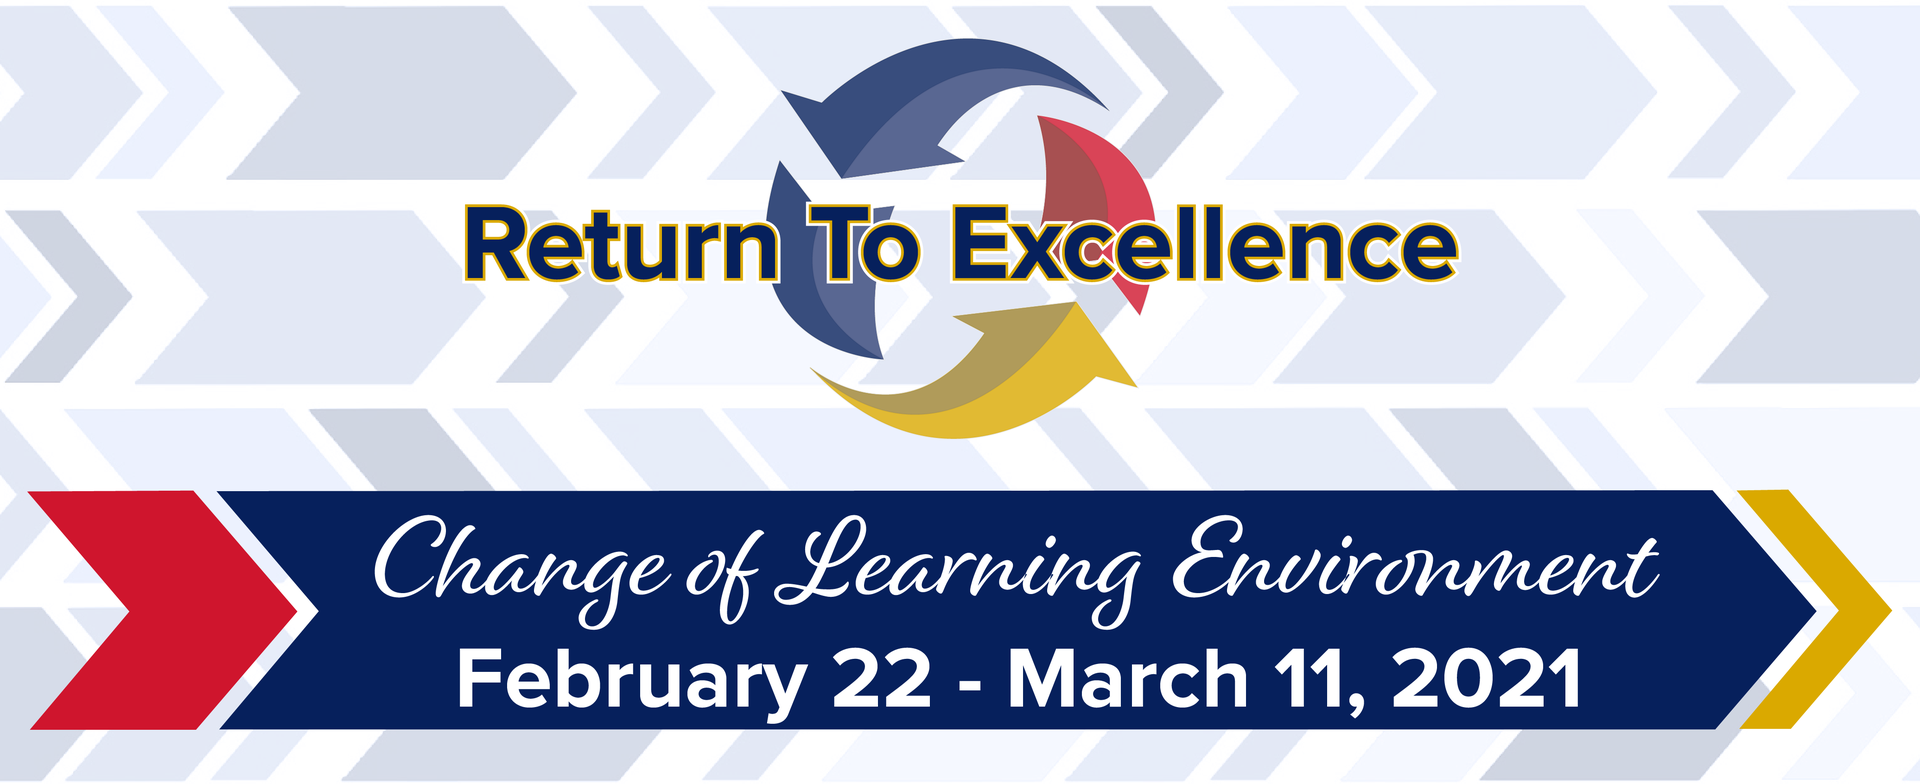 Return to Excellence –Change of Leanring Environment –October 2 through October 11 @ 11:59PM, 2020